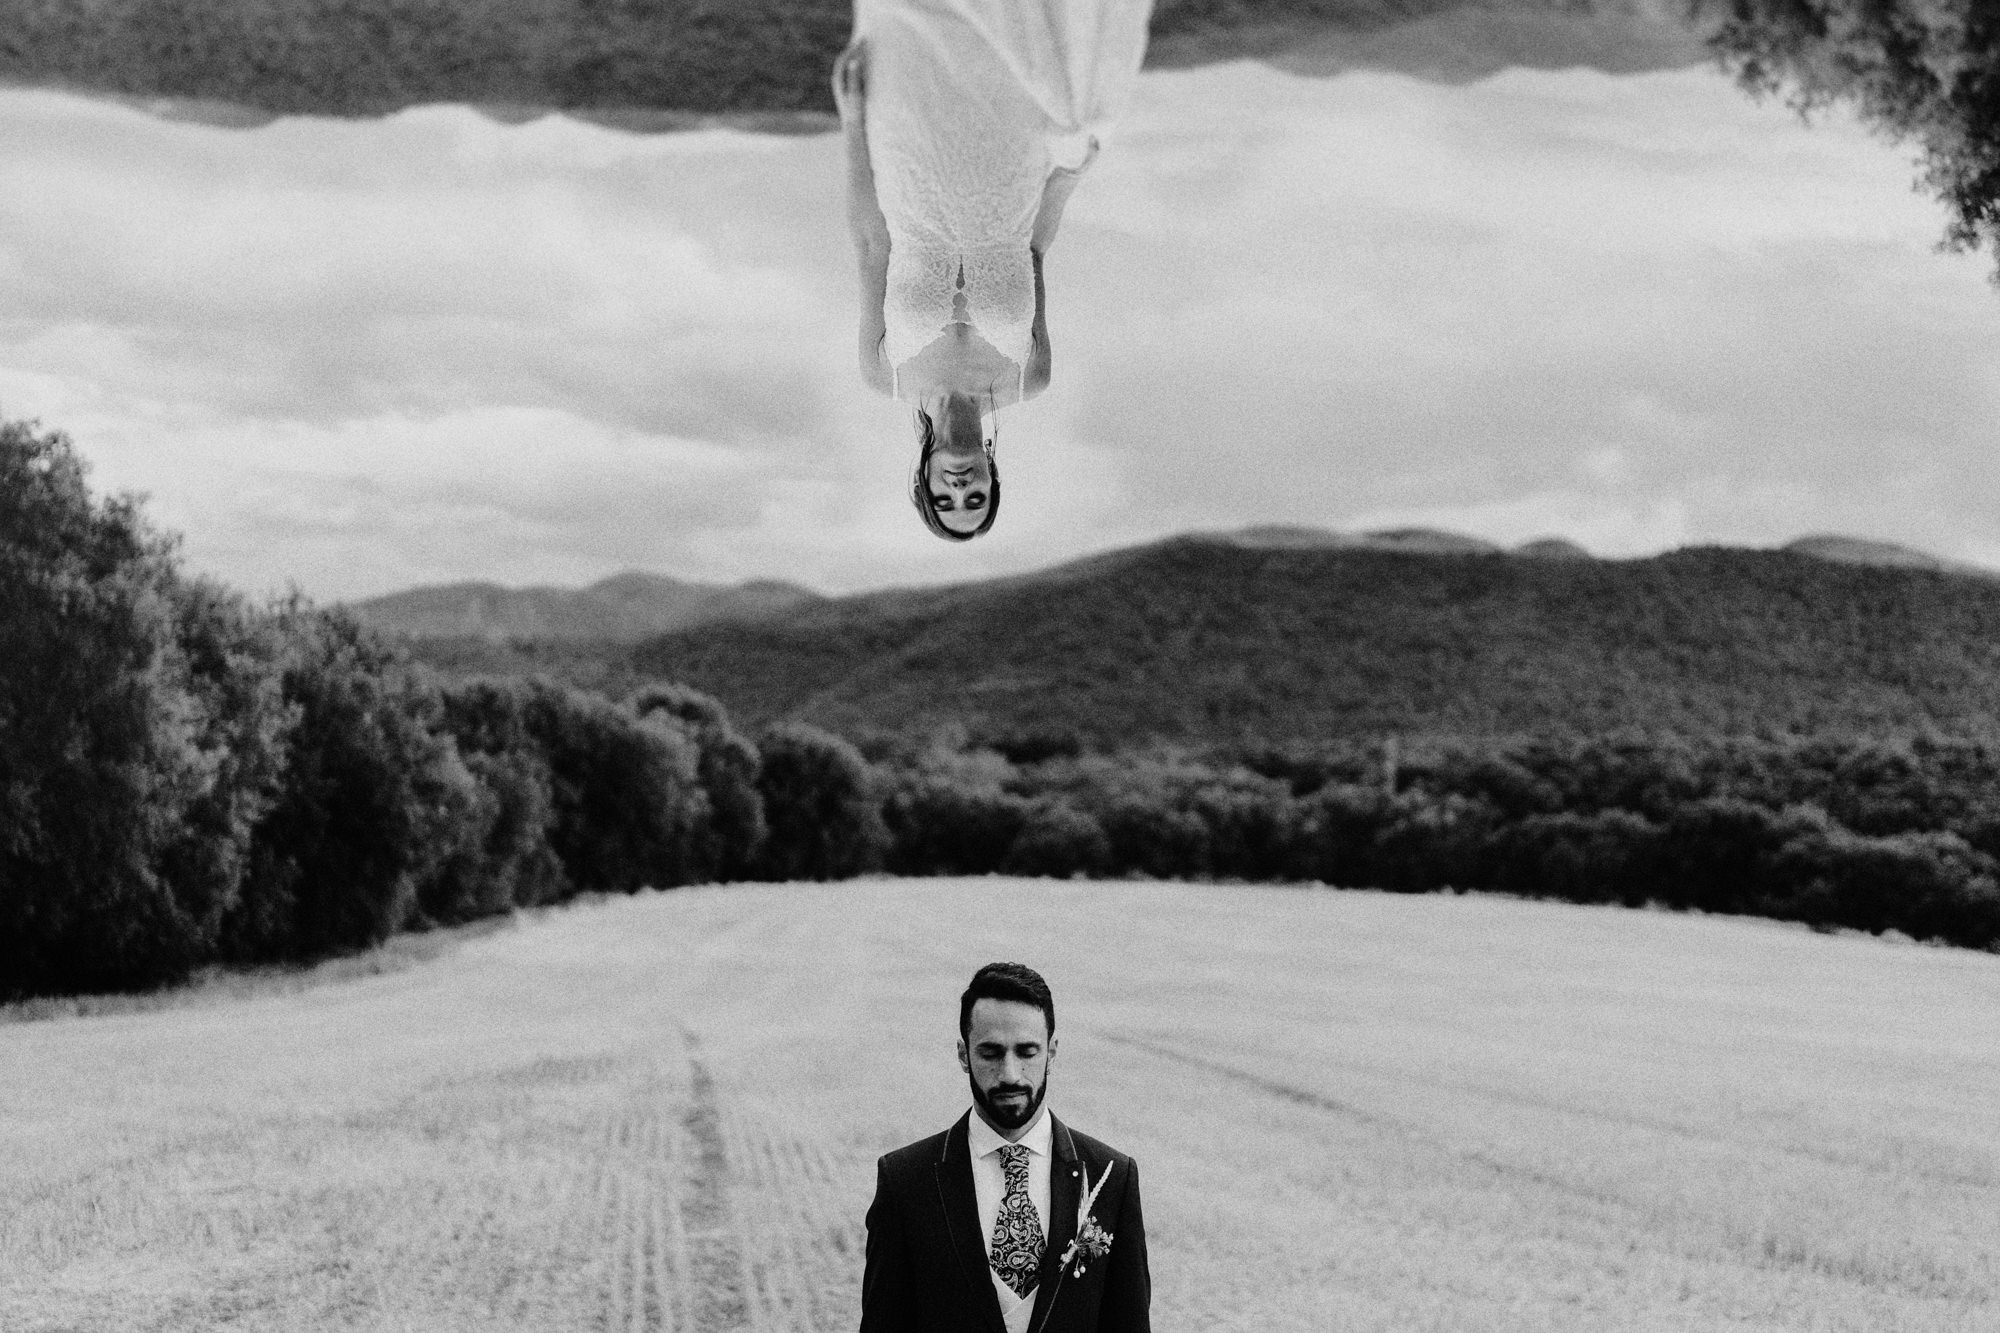 Composite photo with bride upside down by Fer Juaristi